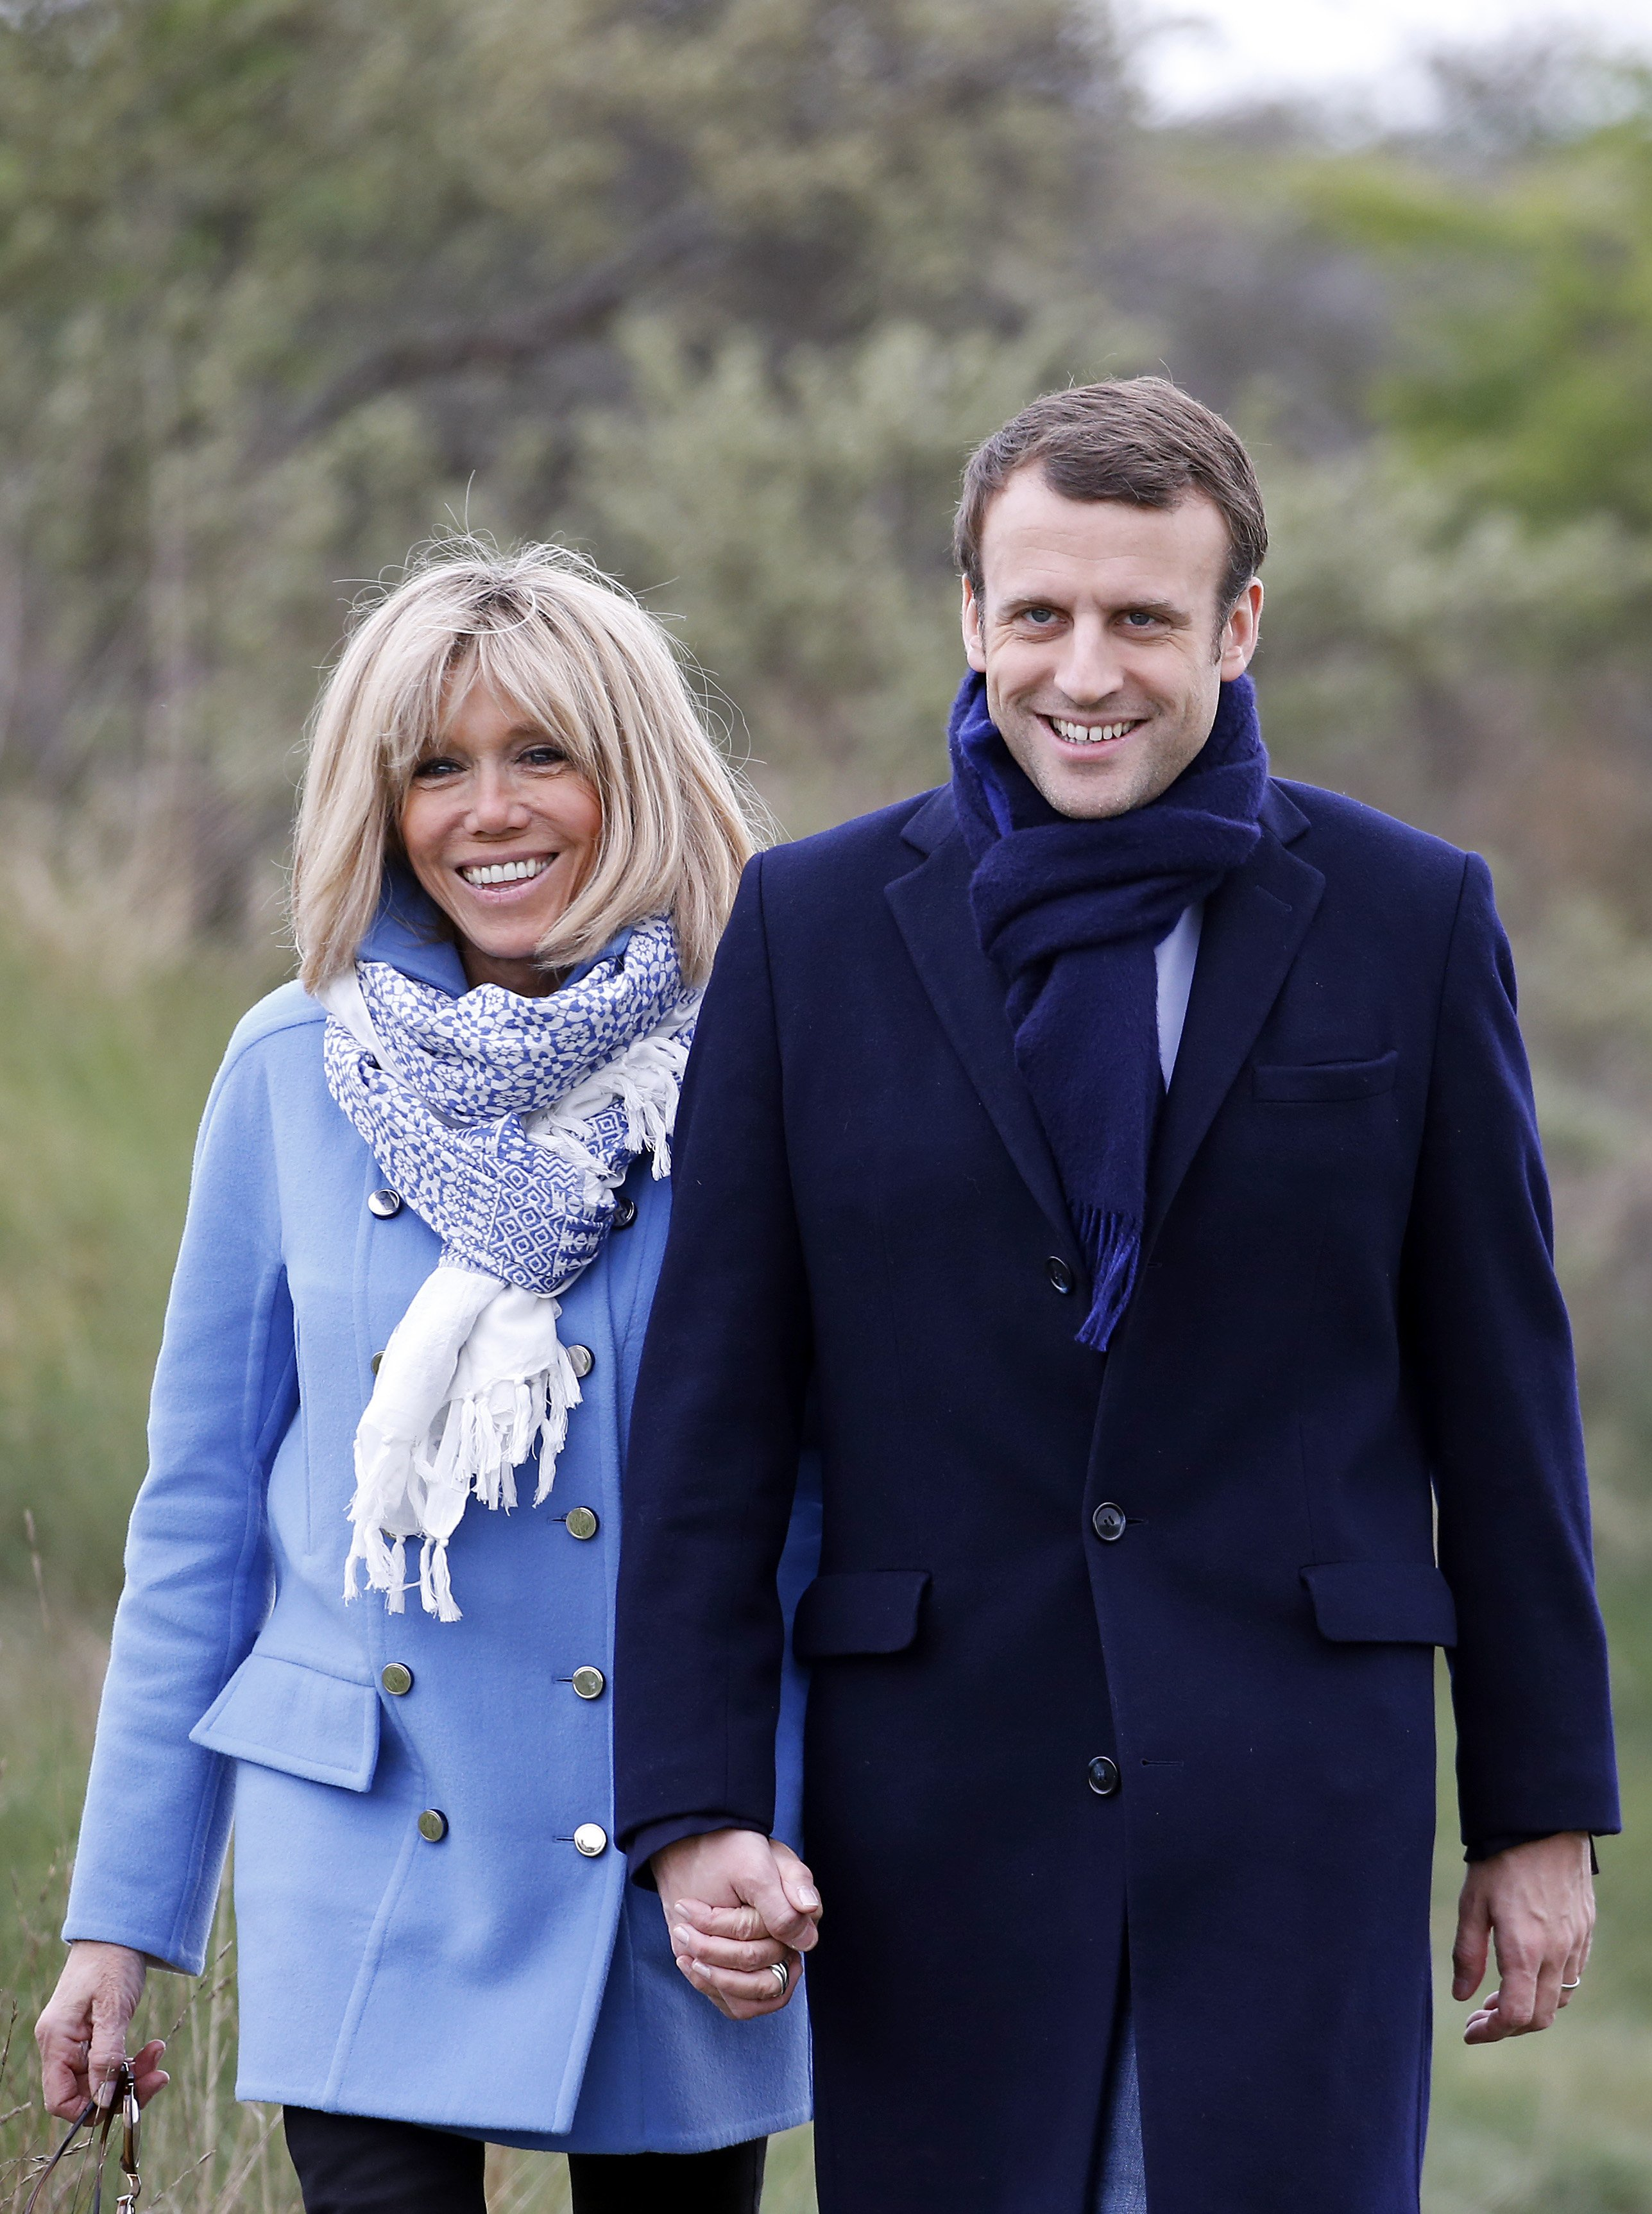 Emmanuel Macron et son épouse Brigitte Trogneux posent pour une photo le 22 avril 2017 au Touquet, France | Photo | : Getty Images